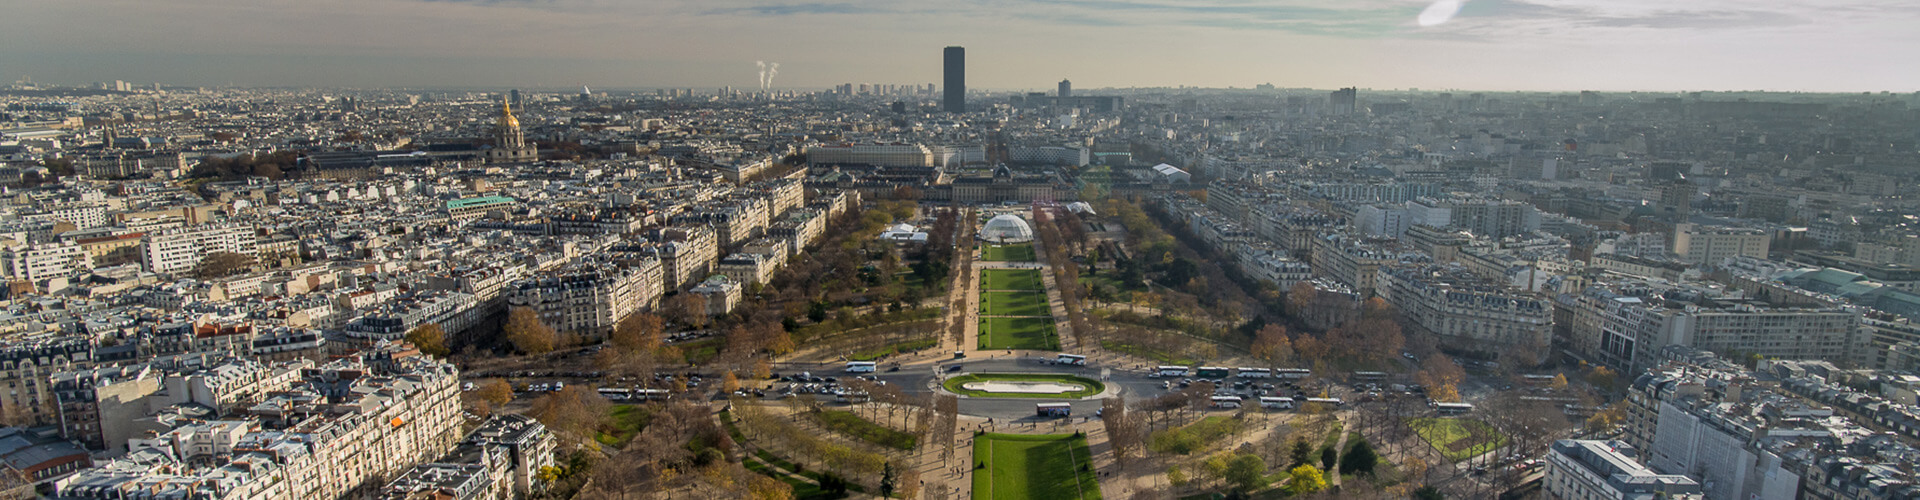 aaeral view of the city of paris